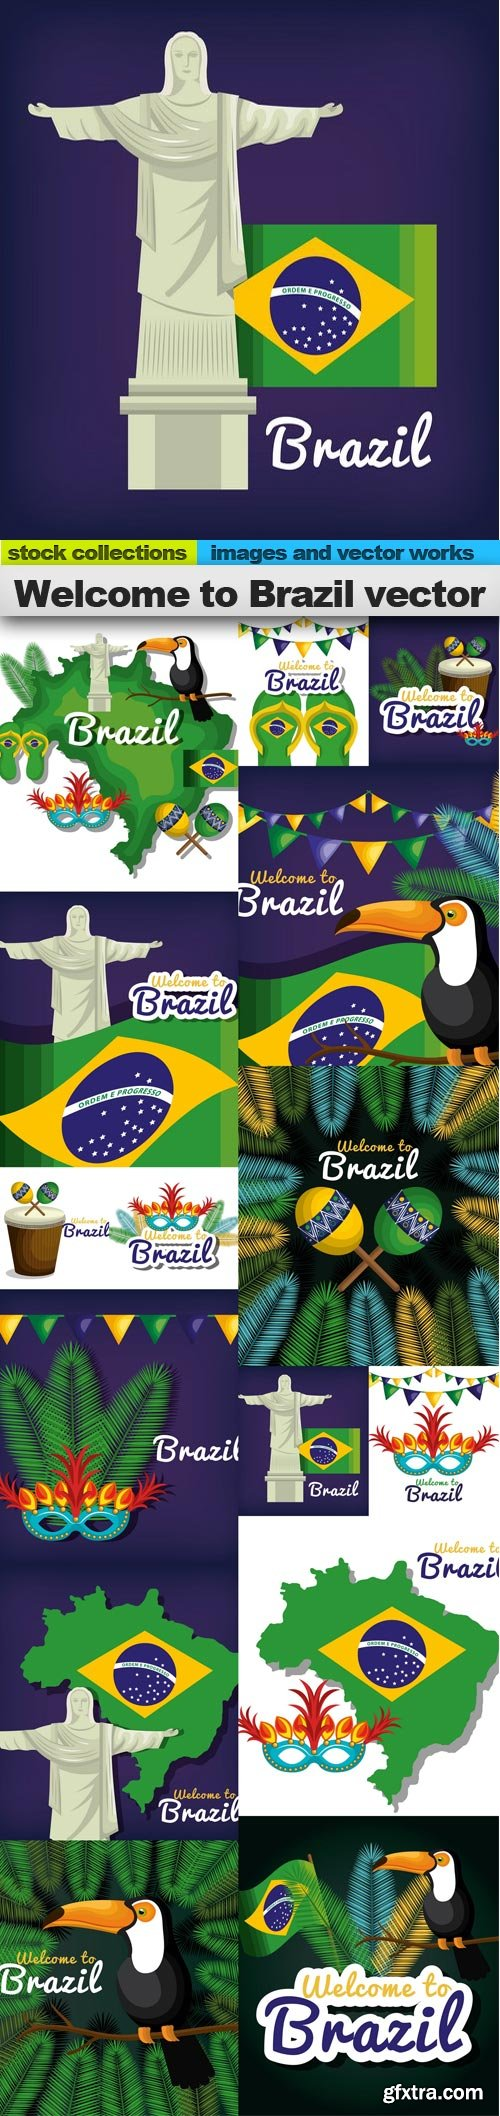 Welcome to Brazil vector, 15 x EPS